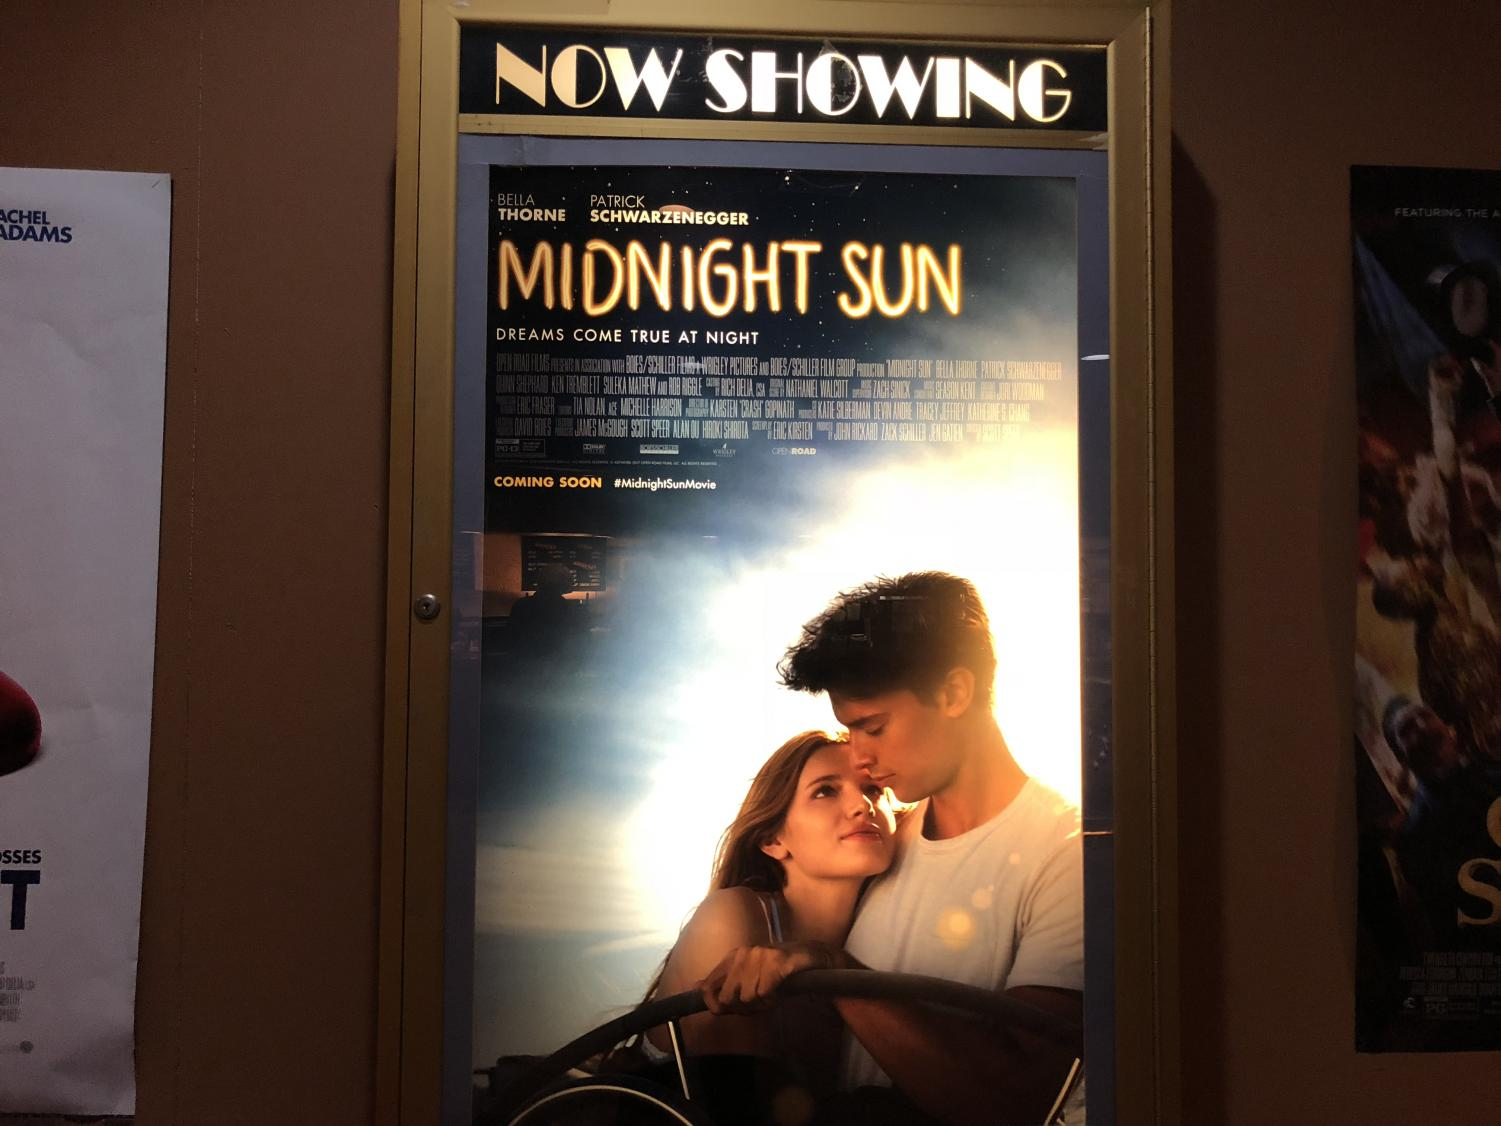 Midnight Sun follows Katie Price as she battles with breaking the rules, her love life,and her life threatening disease- XP.